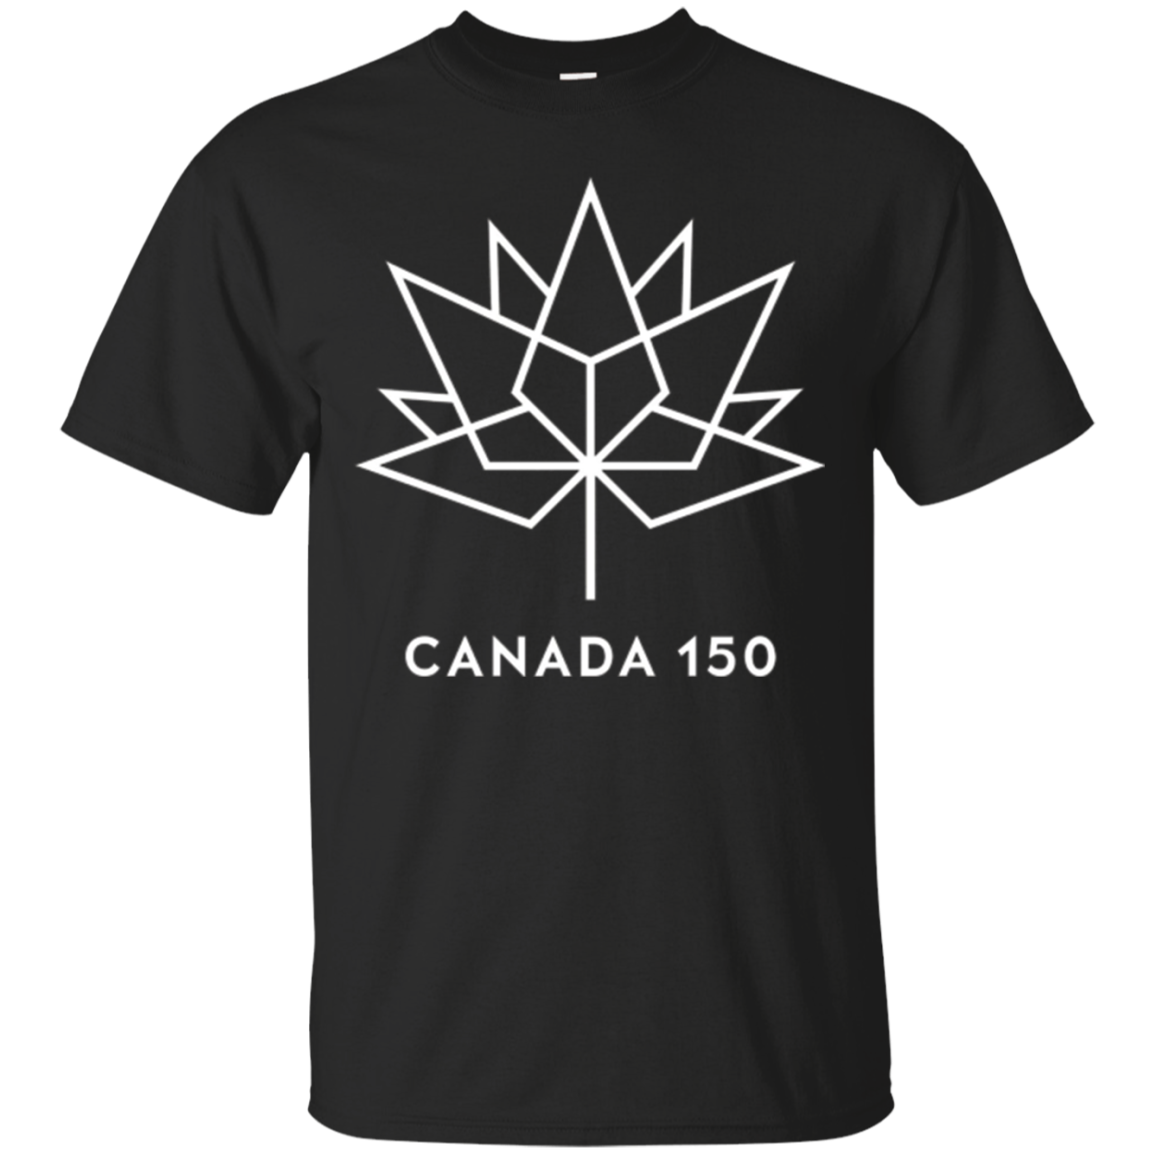 Canada 150 - Officially Licensed T-Shirt